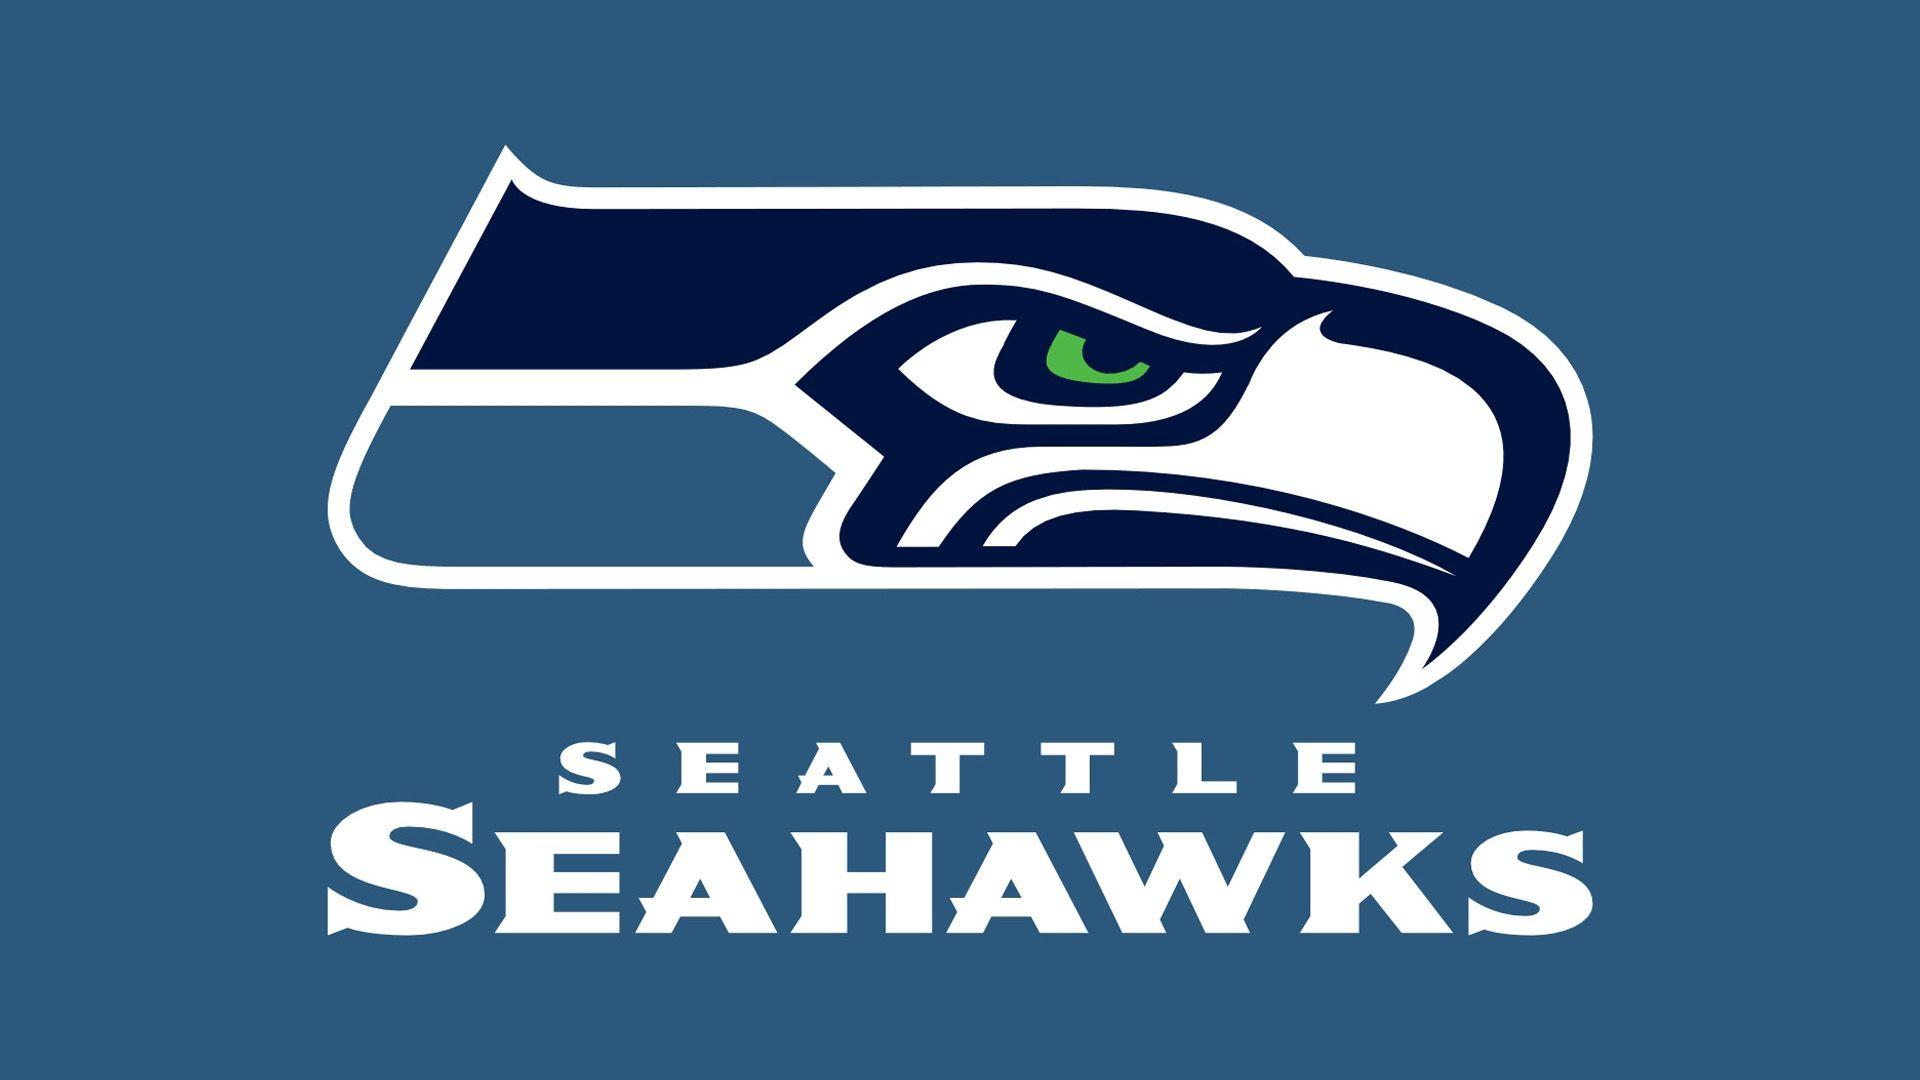 NFL Team Seattle Seahawks Wallpapers 63511 Wallpapers